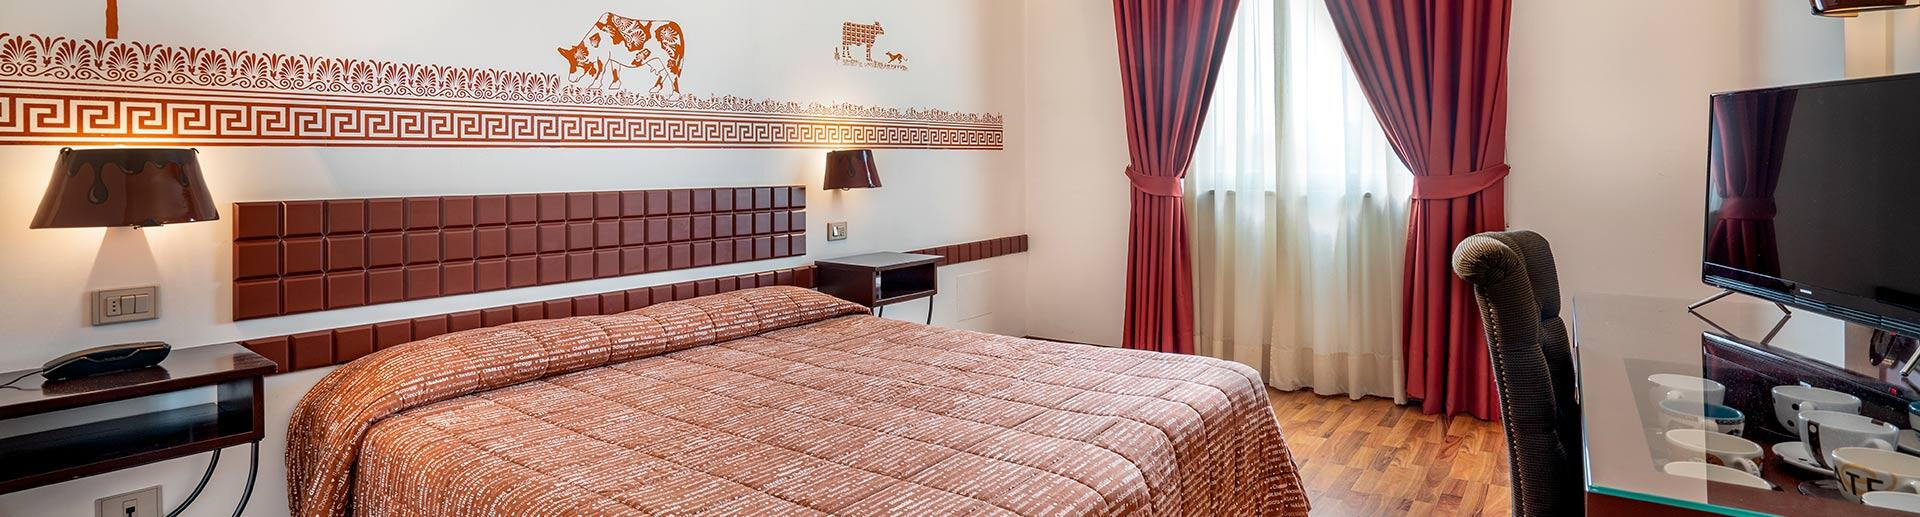 chocohotel it camere 012